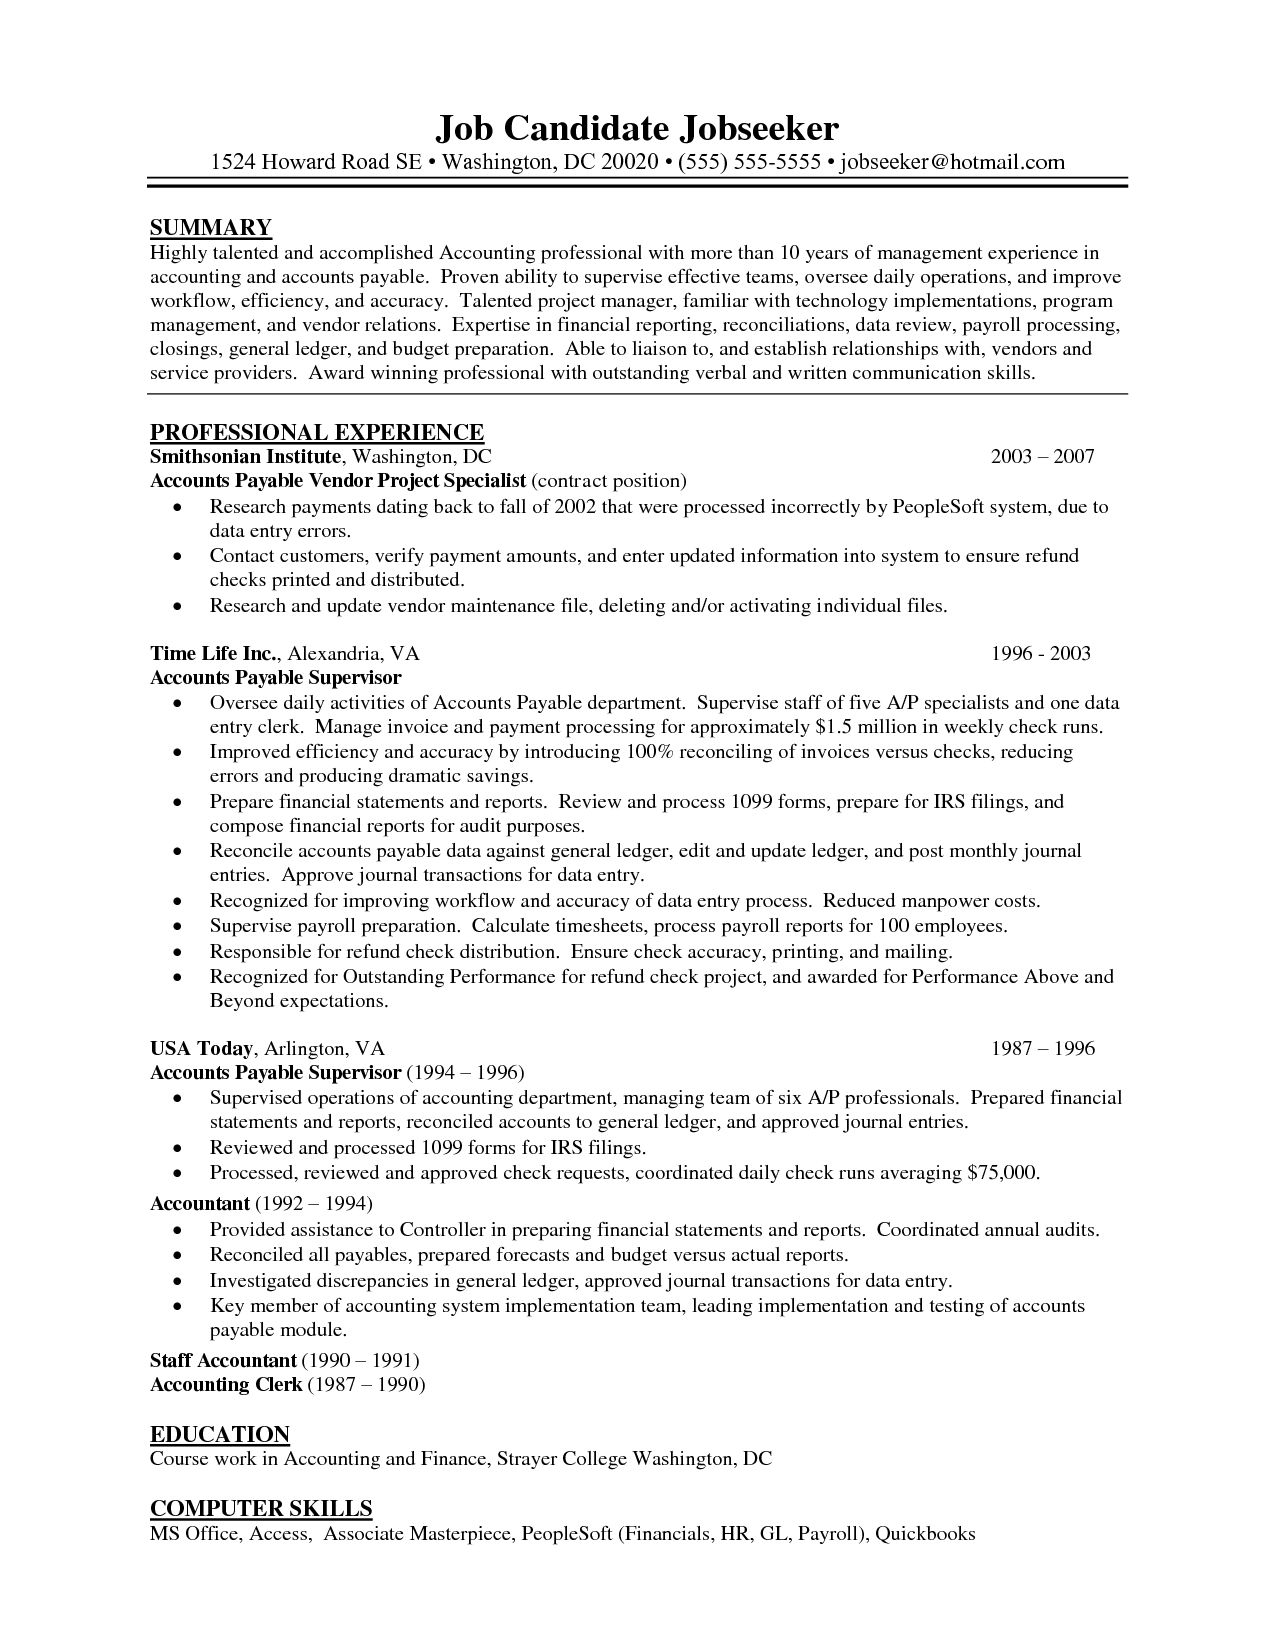 Accounts Payable And Receivable Resume Simple Resume Examples Accounts Payable  Pinterest  Resume Examples